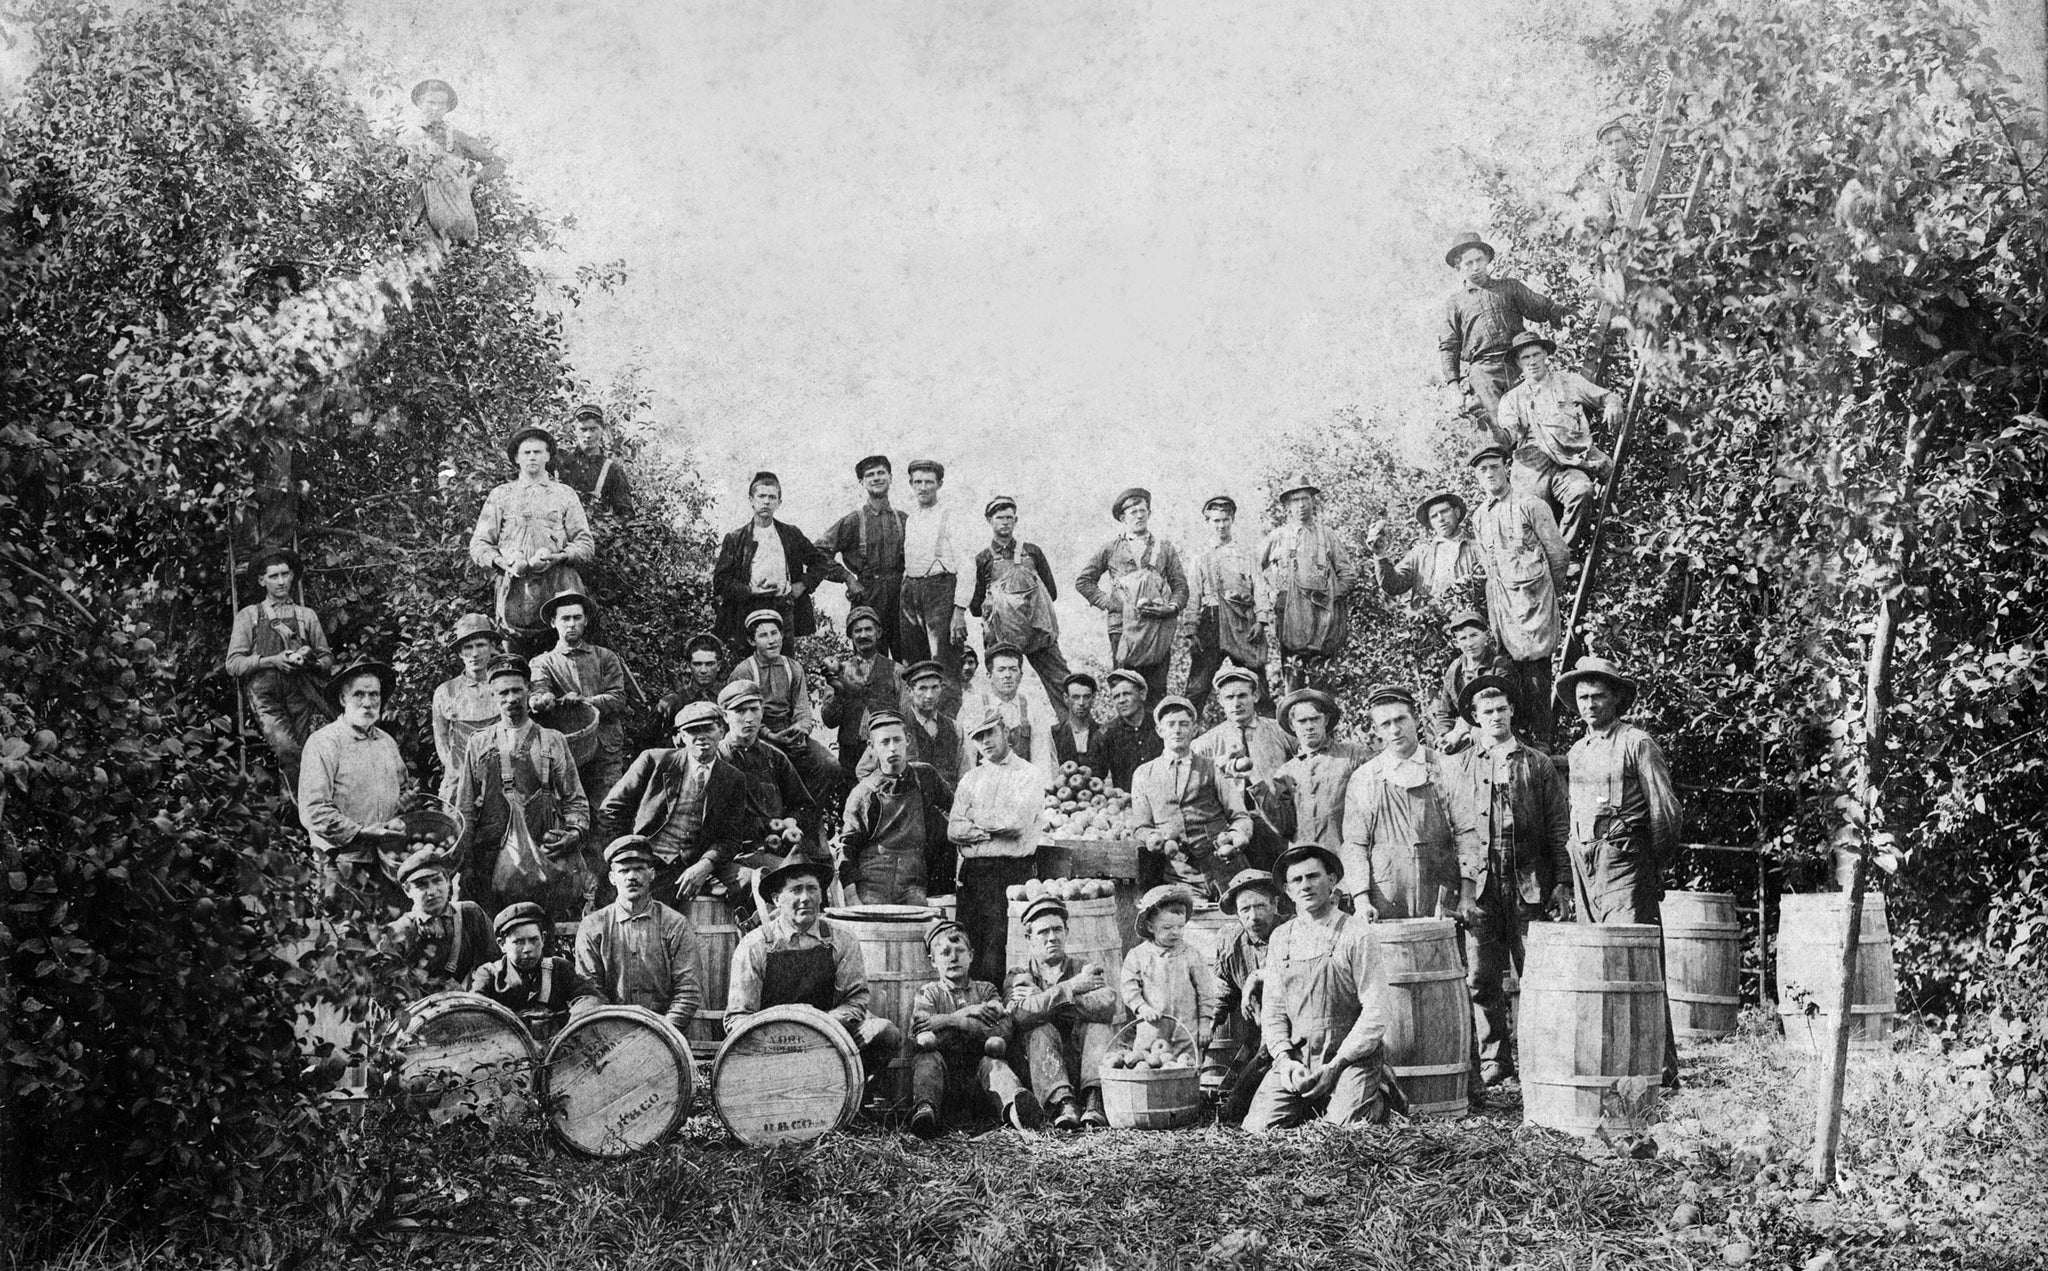 Orchard workers on the J.N. Thatcher Farm and Orchard, 1912. -- Courtesy Karen Thatcher